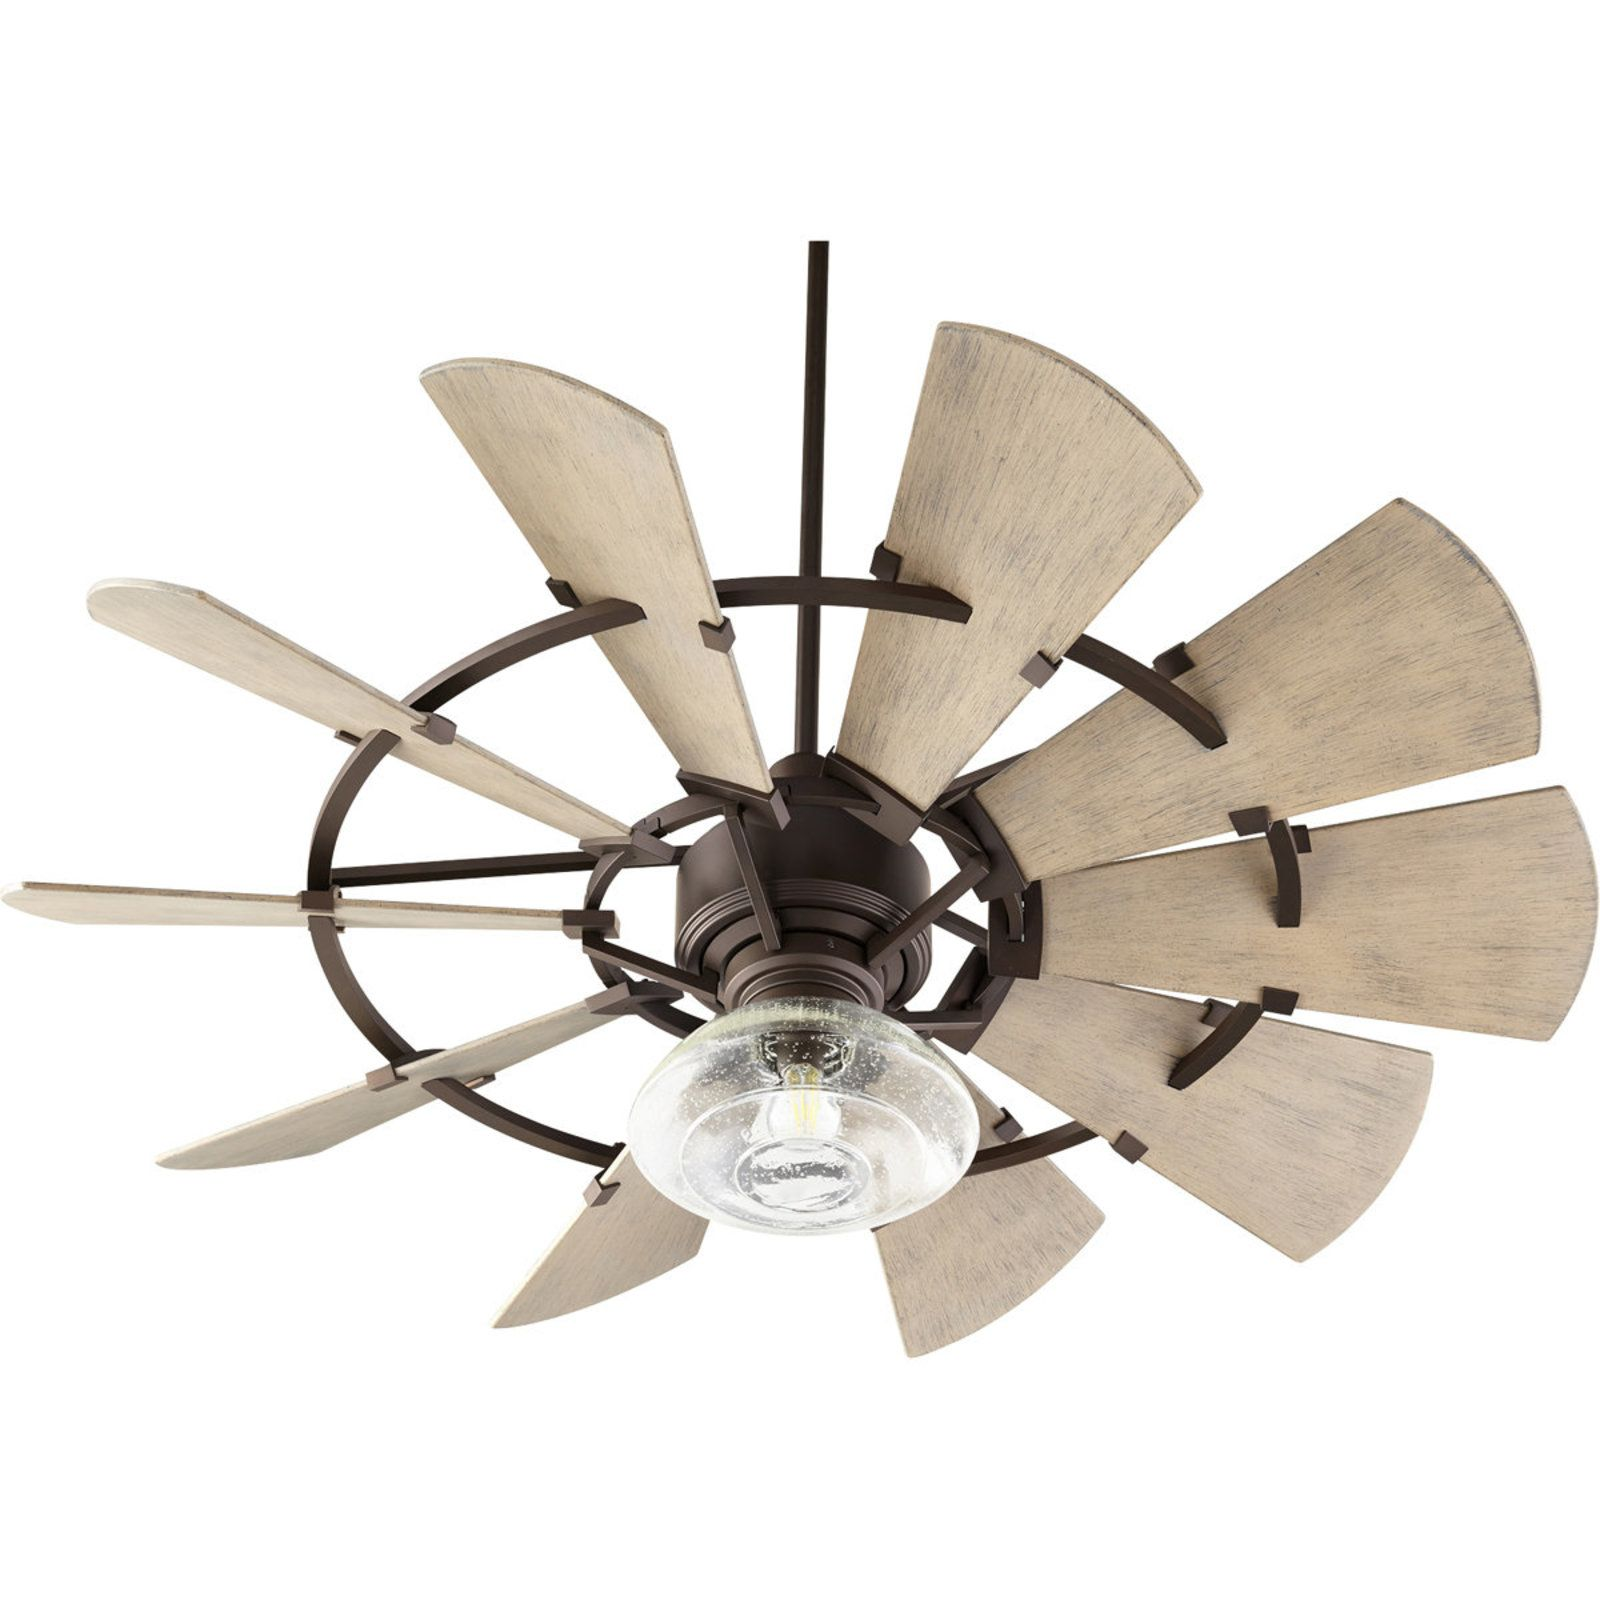 52 Outdoor Rustic Windmill Ceiling Fan Windmill Ceiling Fan